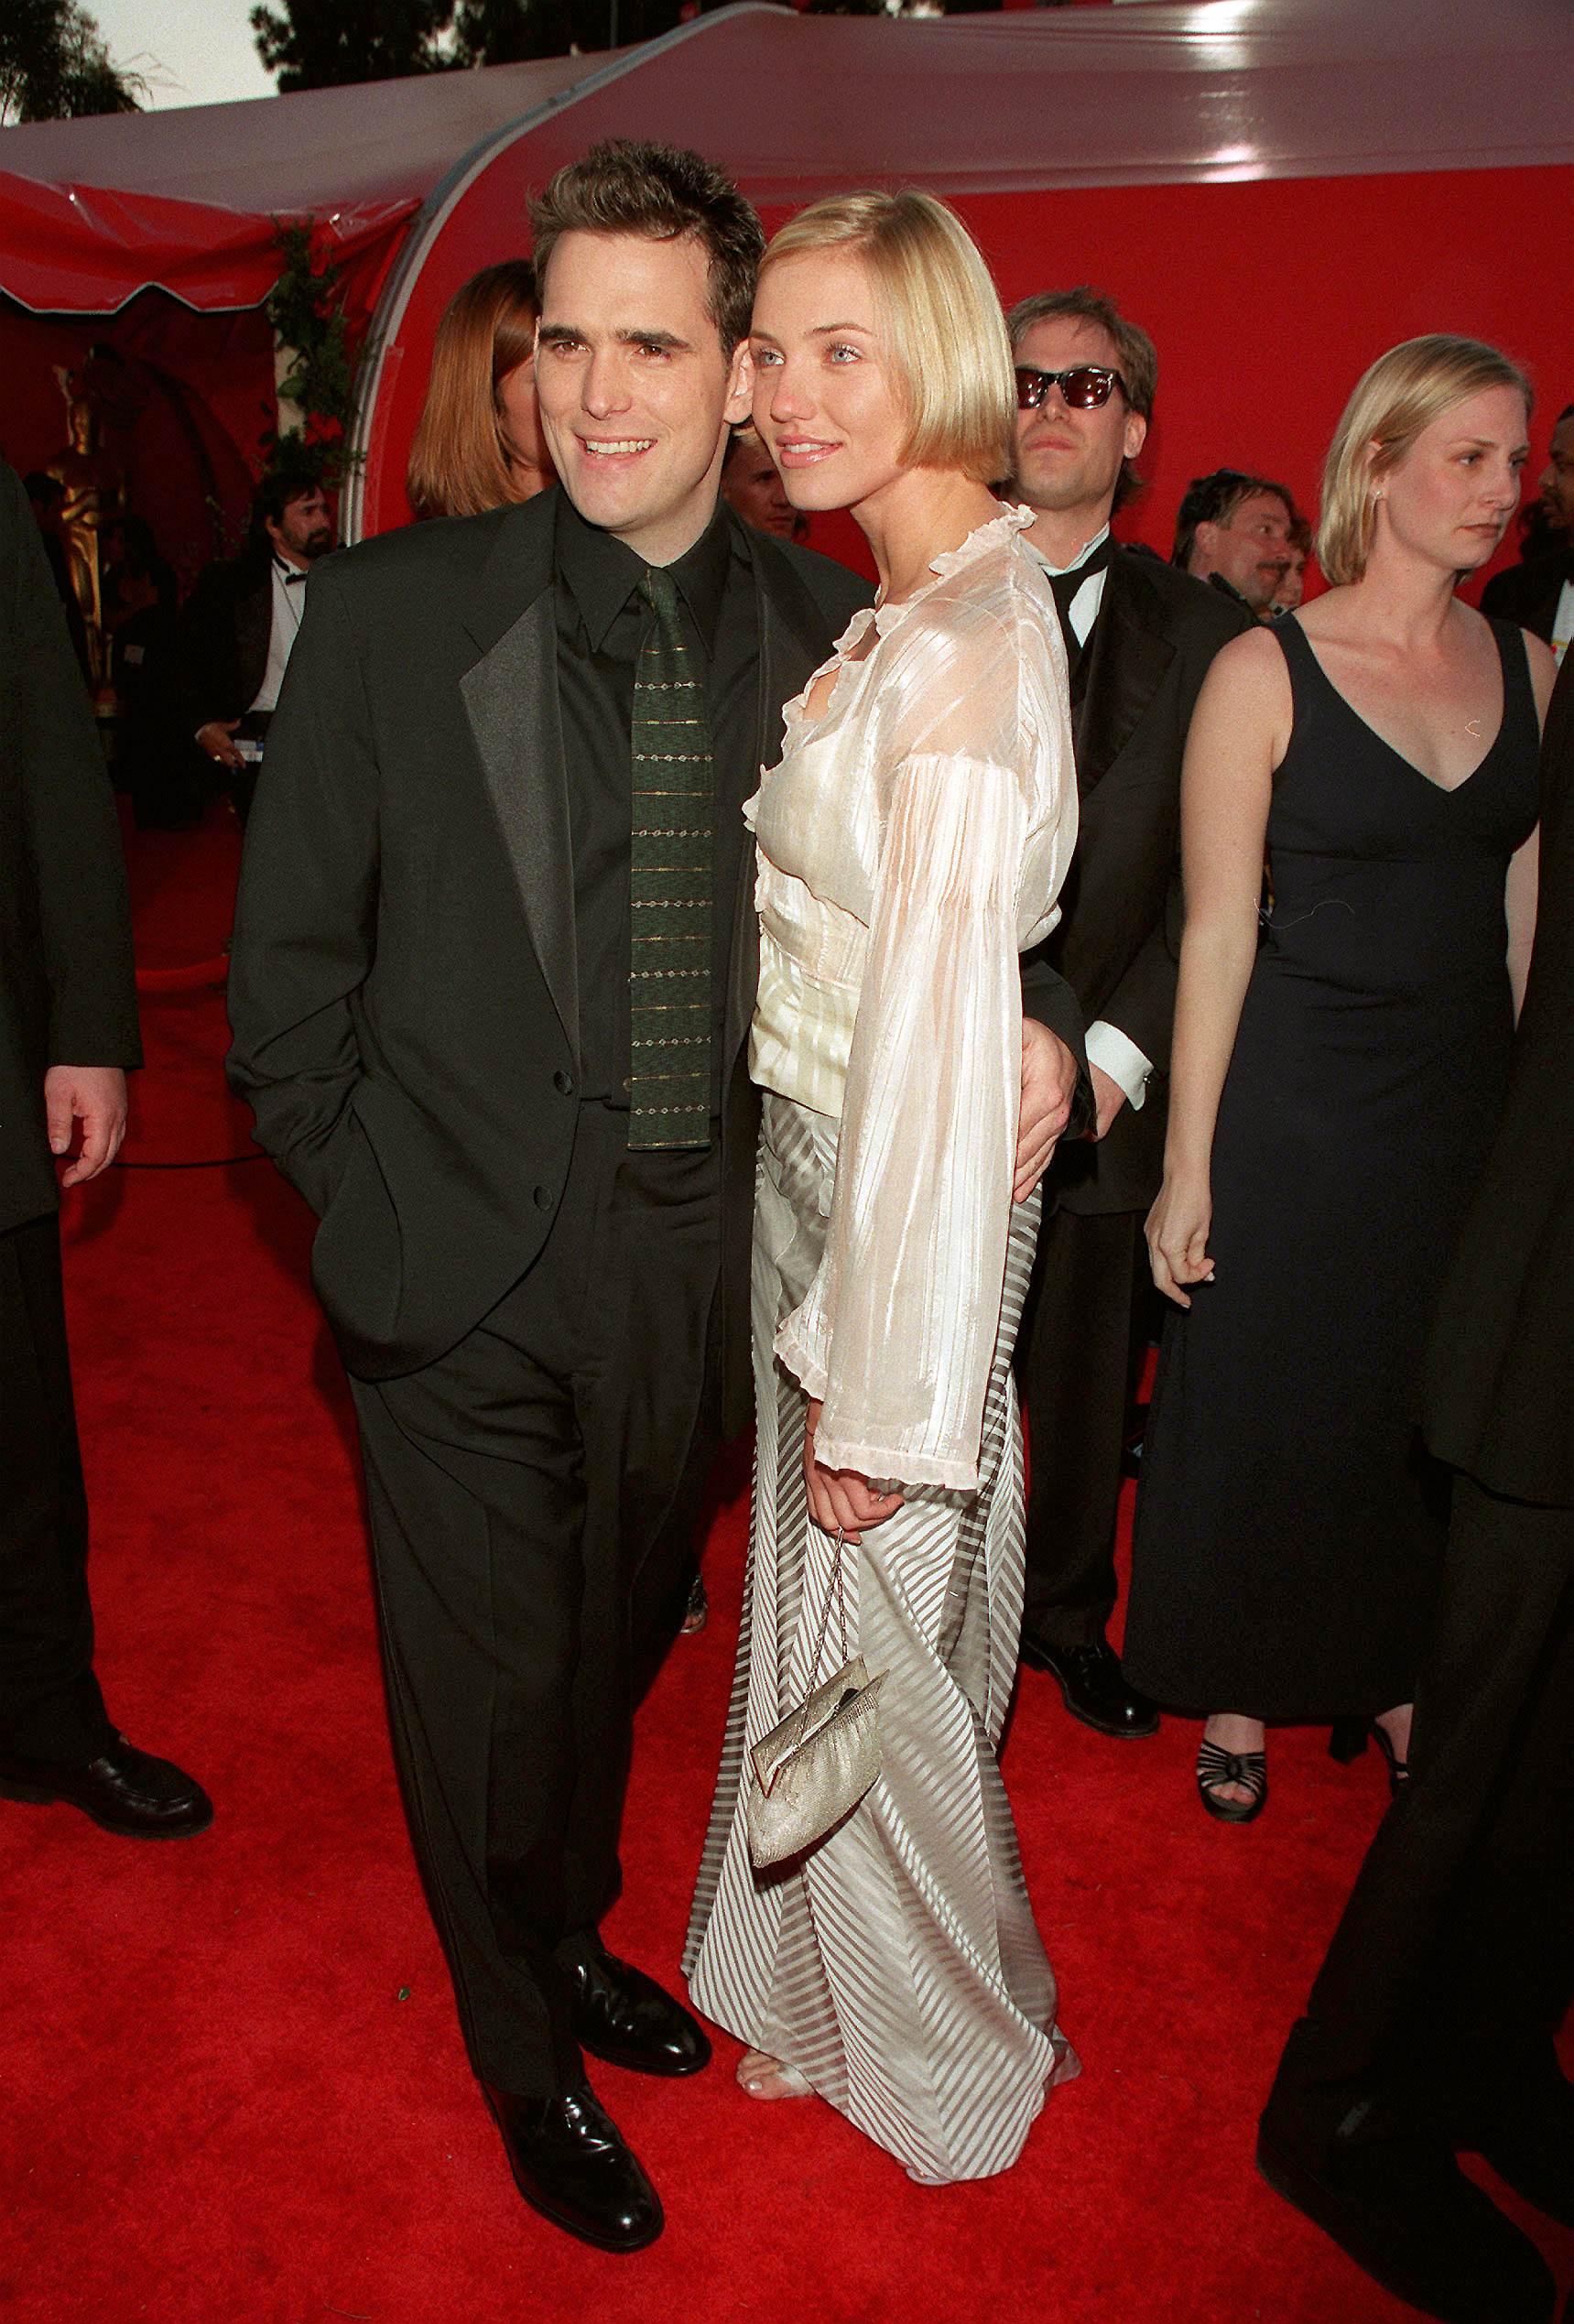 Matt Dillon and Cameron Diaz arrive at the Shrine auditorium for the 70th annual Academy Awards on March 23, 1998.